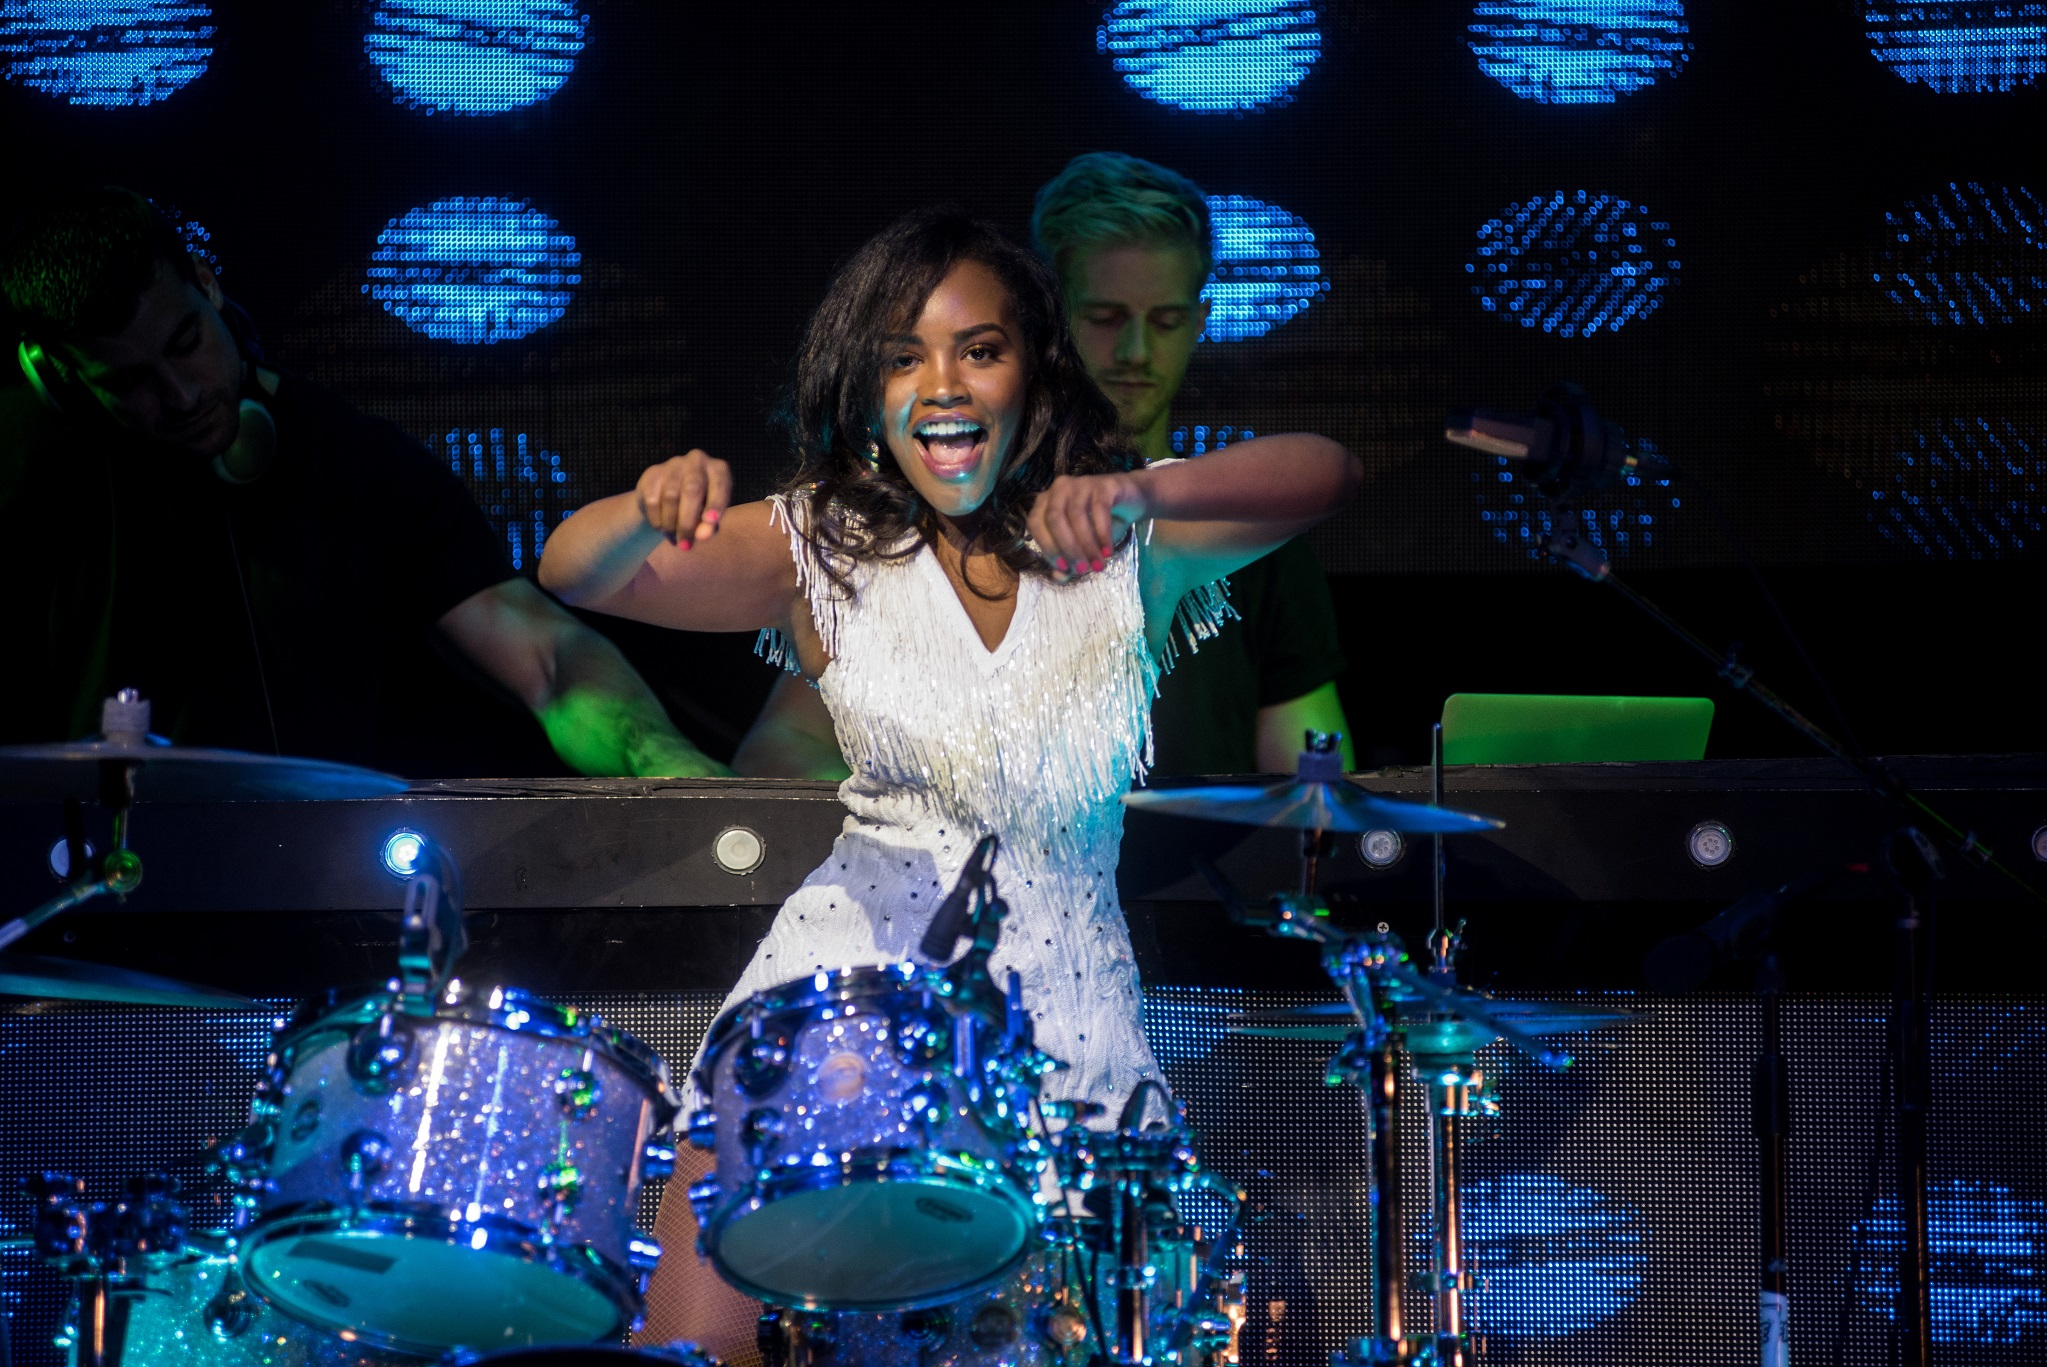 Glorious-Singer-Livetronica Drummer-Producer-Songwriter-Marquee-Nightclub-Video-New York-NY-45lr.jpg